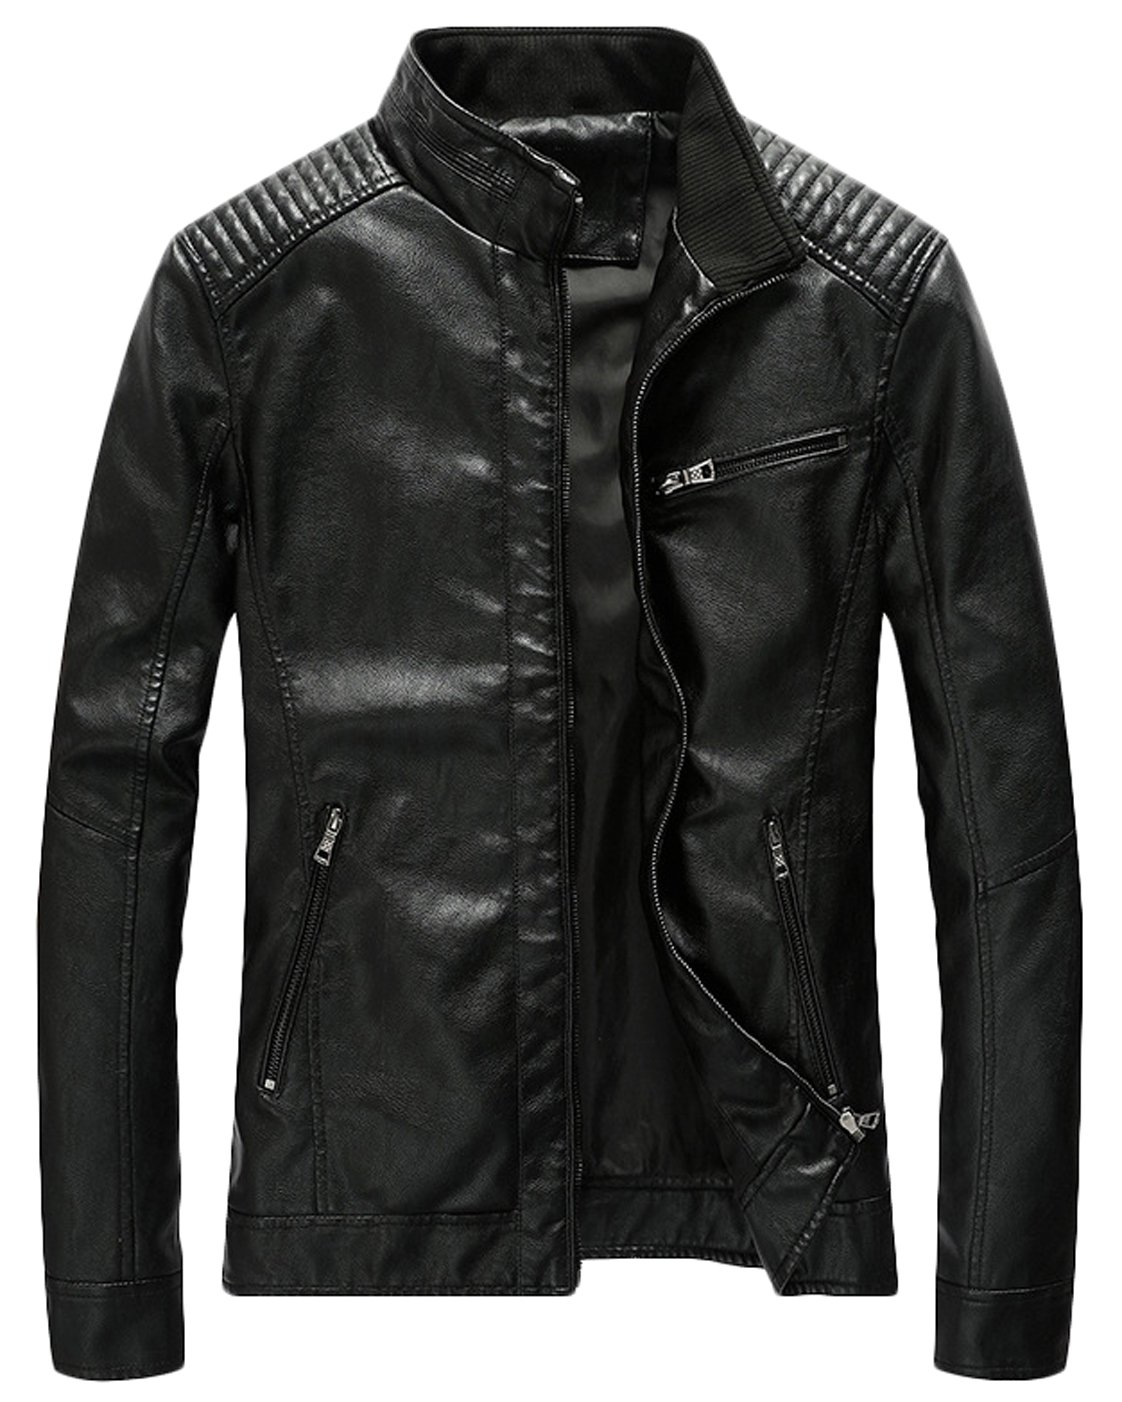 Youhan Men's Casual Zip up Slim Bomber Faux Leather Jacket (Medium, Black)